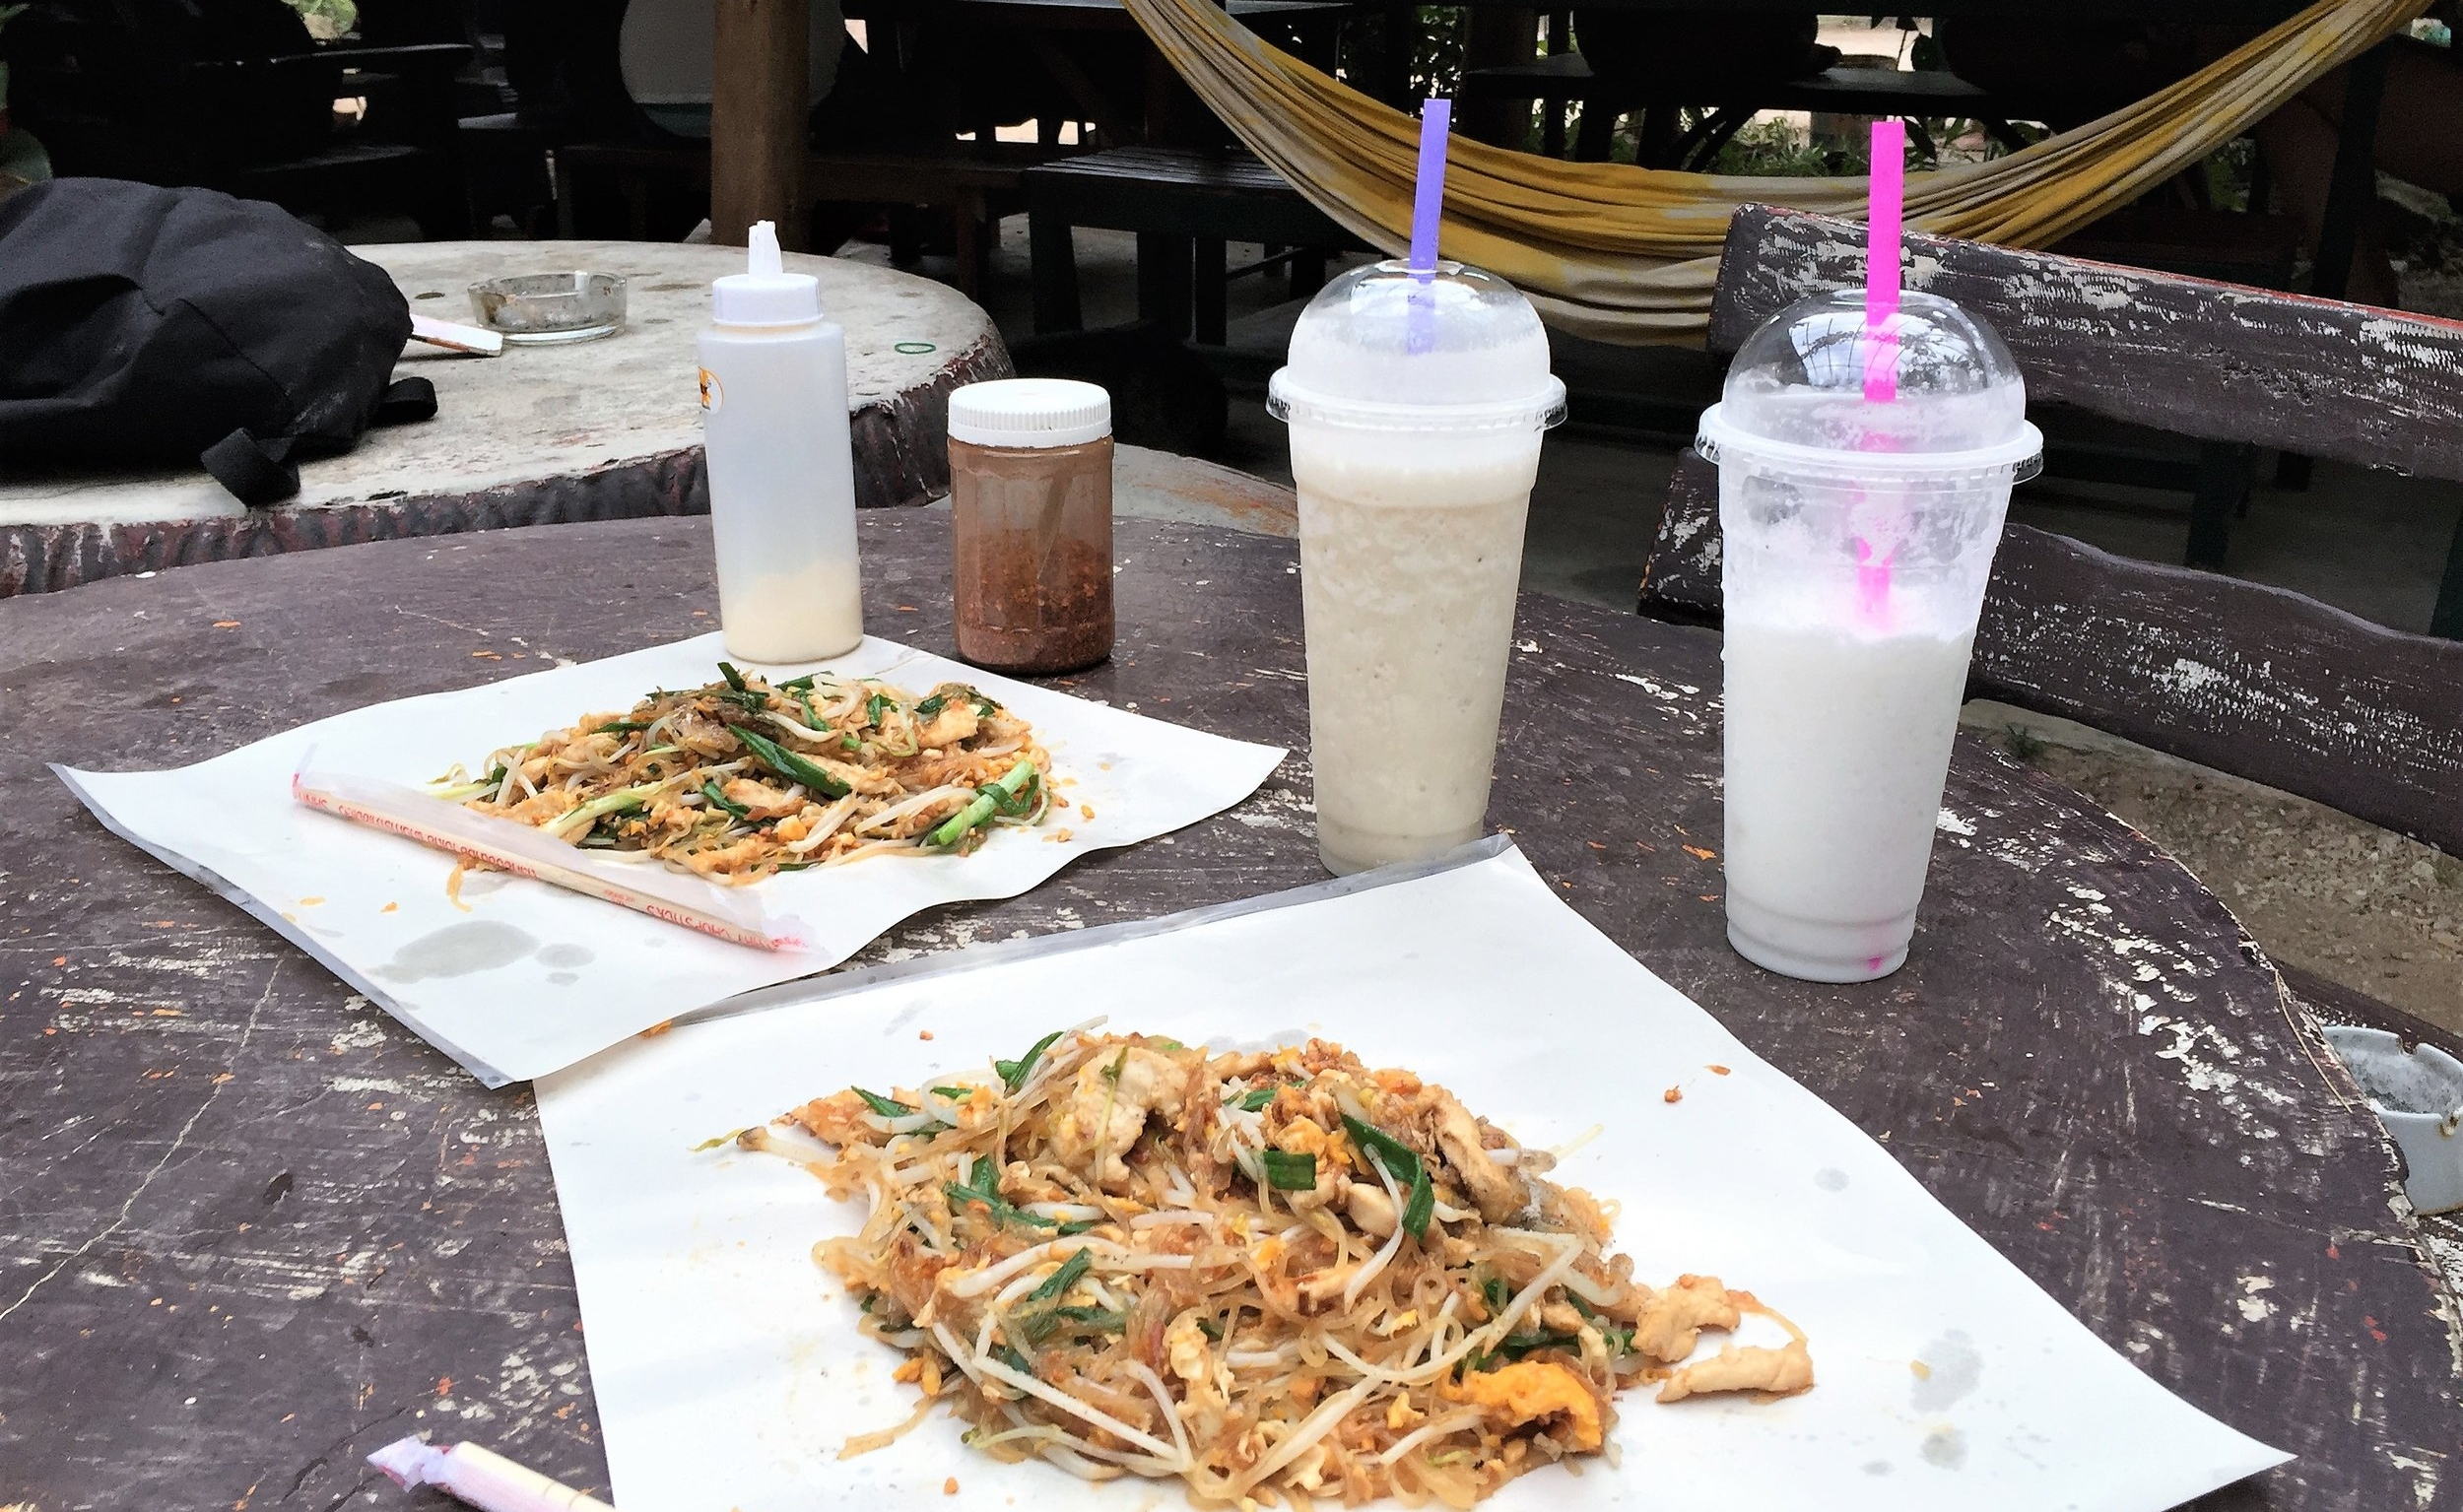 Pad Thai is better in paper than on a plate anyways.